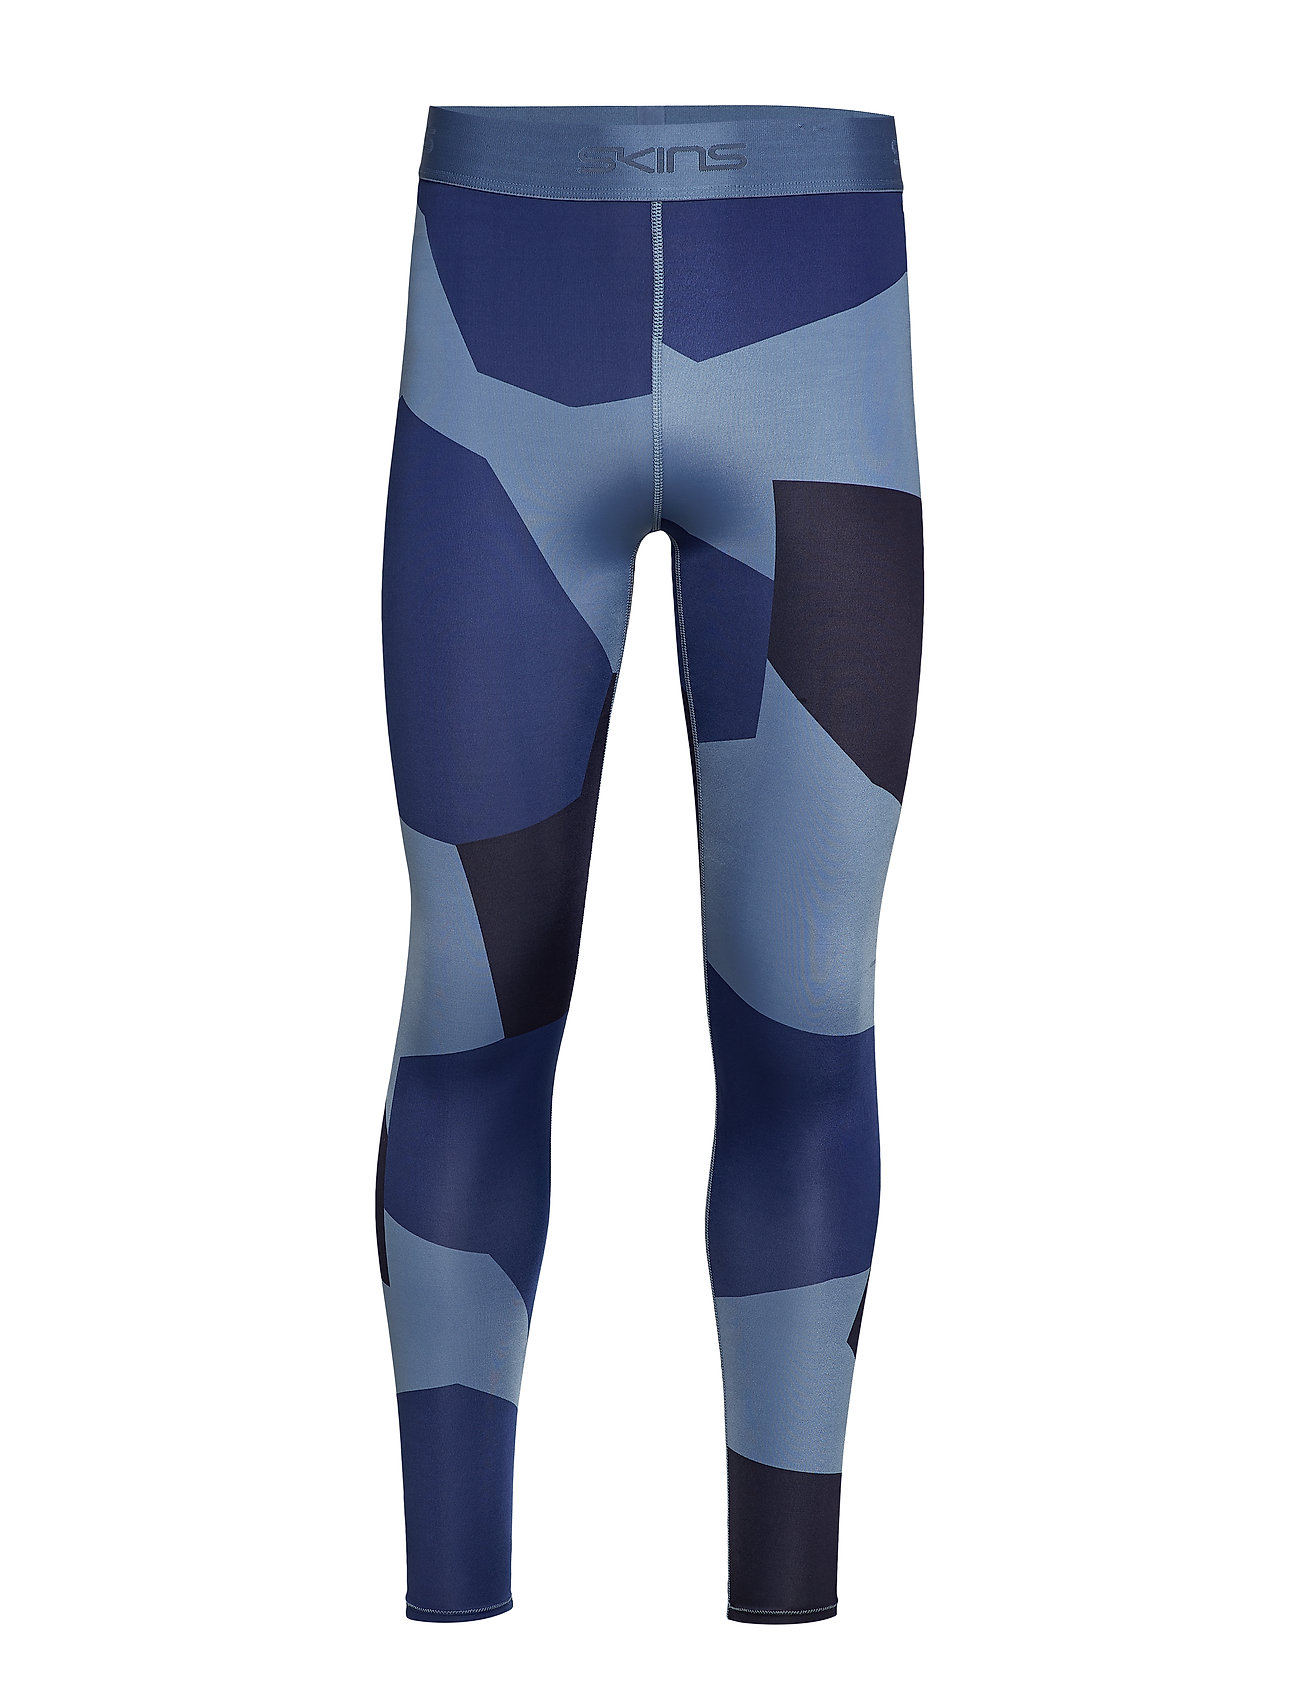 Skins DNAmic Primary Mens Long Tights - DECONST CAMO/CLASSIC BLUE